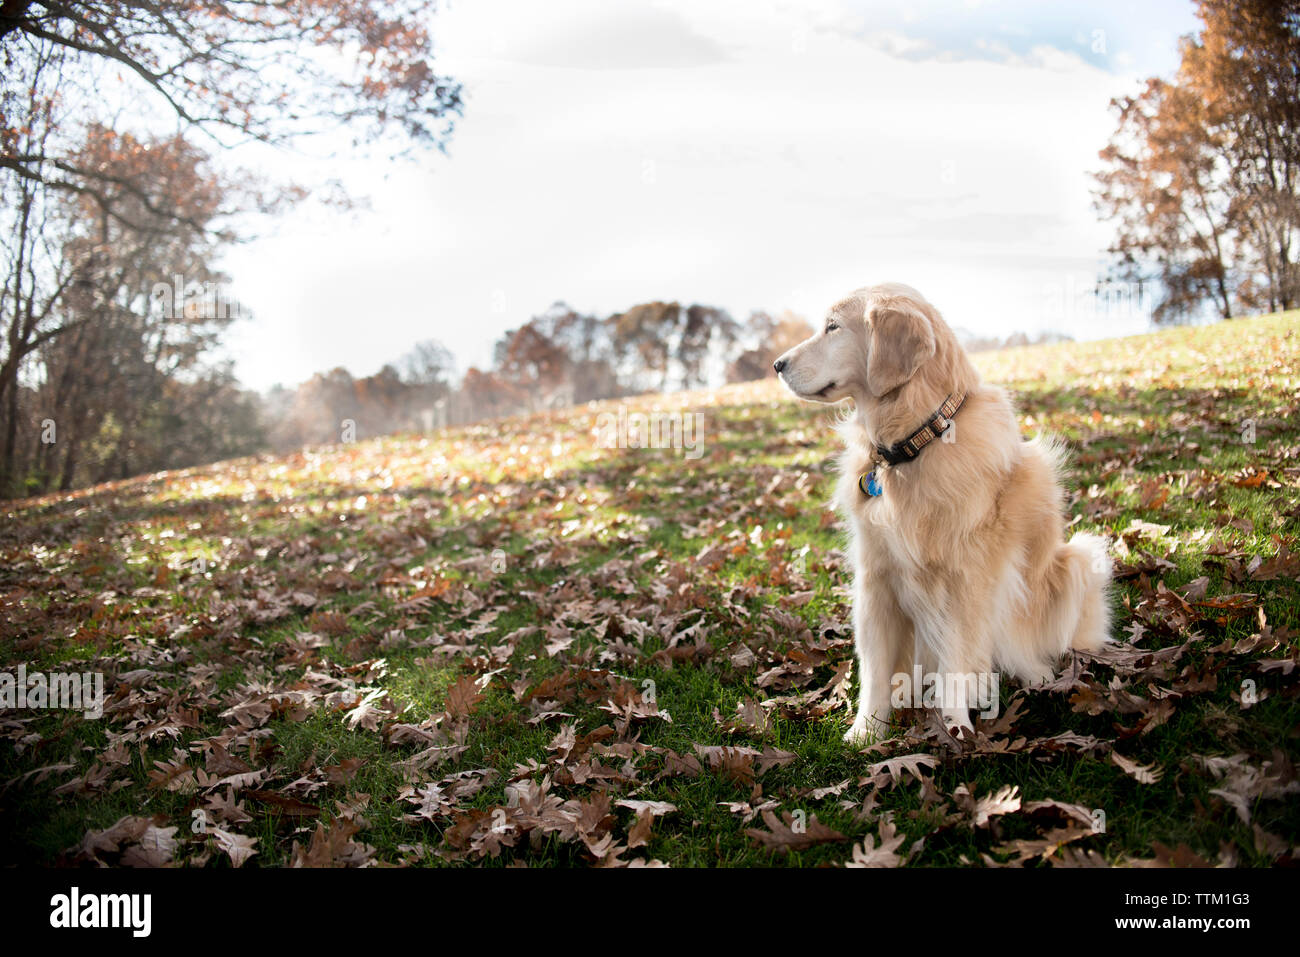 Hairy Golden Retriever looking away while sitting on field with dry leaves in park during autumn - Stock Image